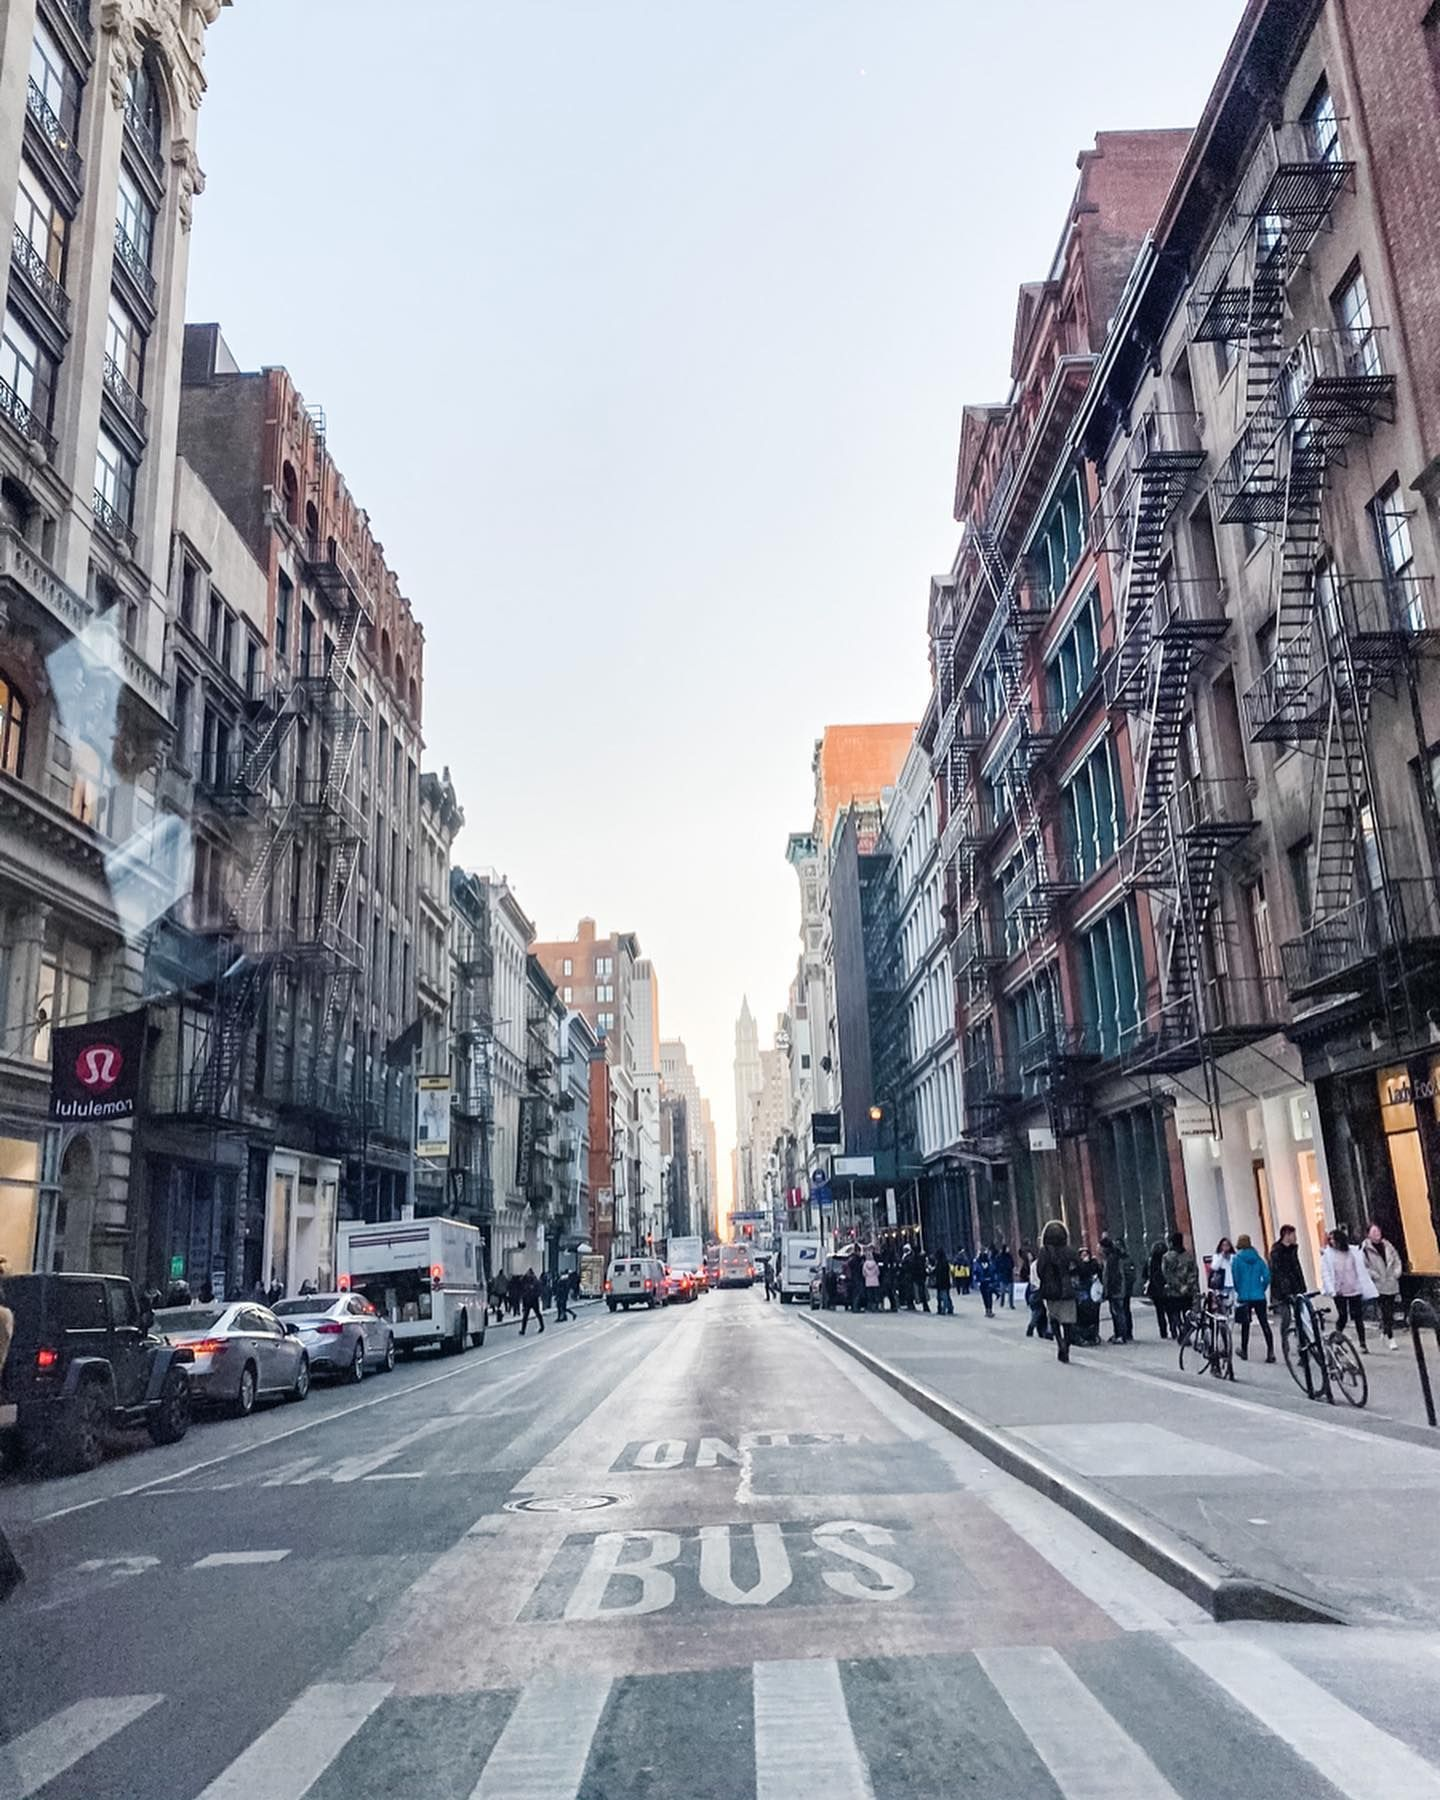 strolling down memory lane & it looks a lot like this! new blog post on my 21st birthday trip to NYC! quite a birthday to remember :) link in bio!!! ⠀ ⠀ ⠀ ⠀ ⠀ ⠀ ⠀ ⠀ ⠀  #betterlatethannever #newyork #newyorkcity #nyc #21stbirthday #goldenbirthday #christmasinnyc #travel #soho #sohonyc #college #collegeblog #blogger #myadventures #traveler #blog #personalblog #like #follow #comment #style